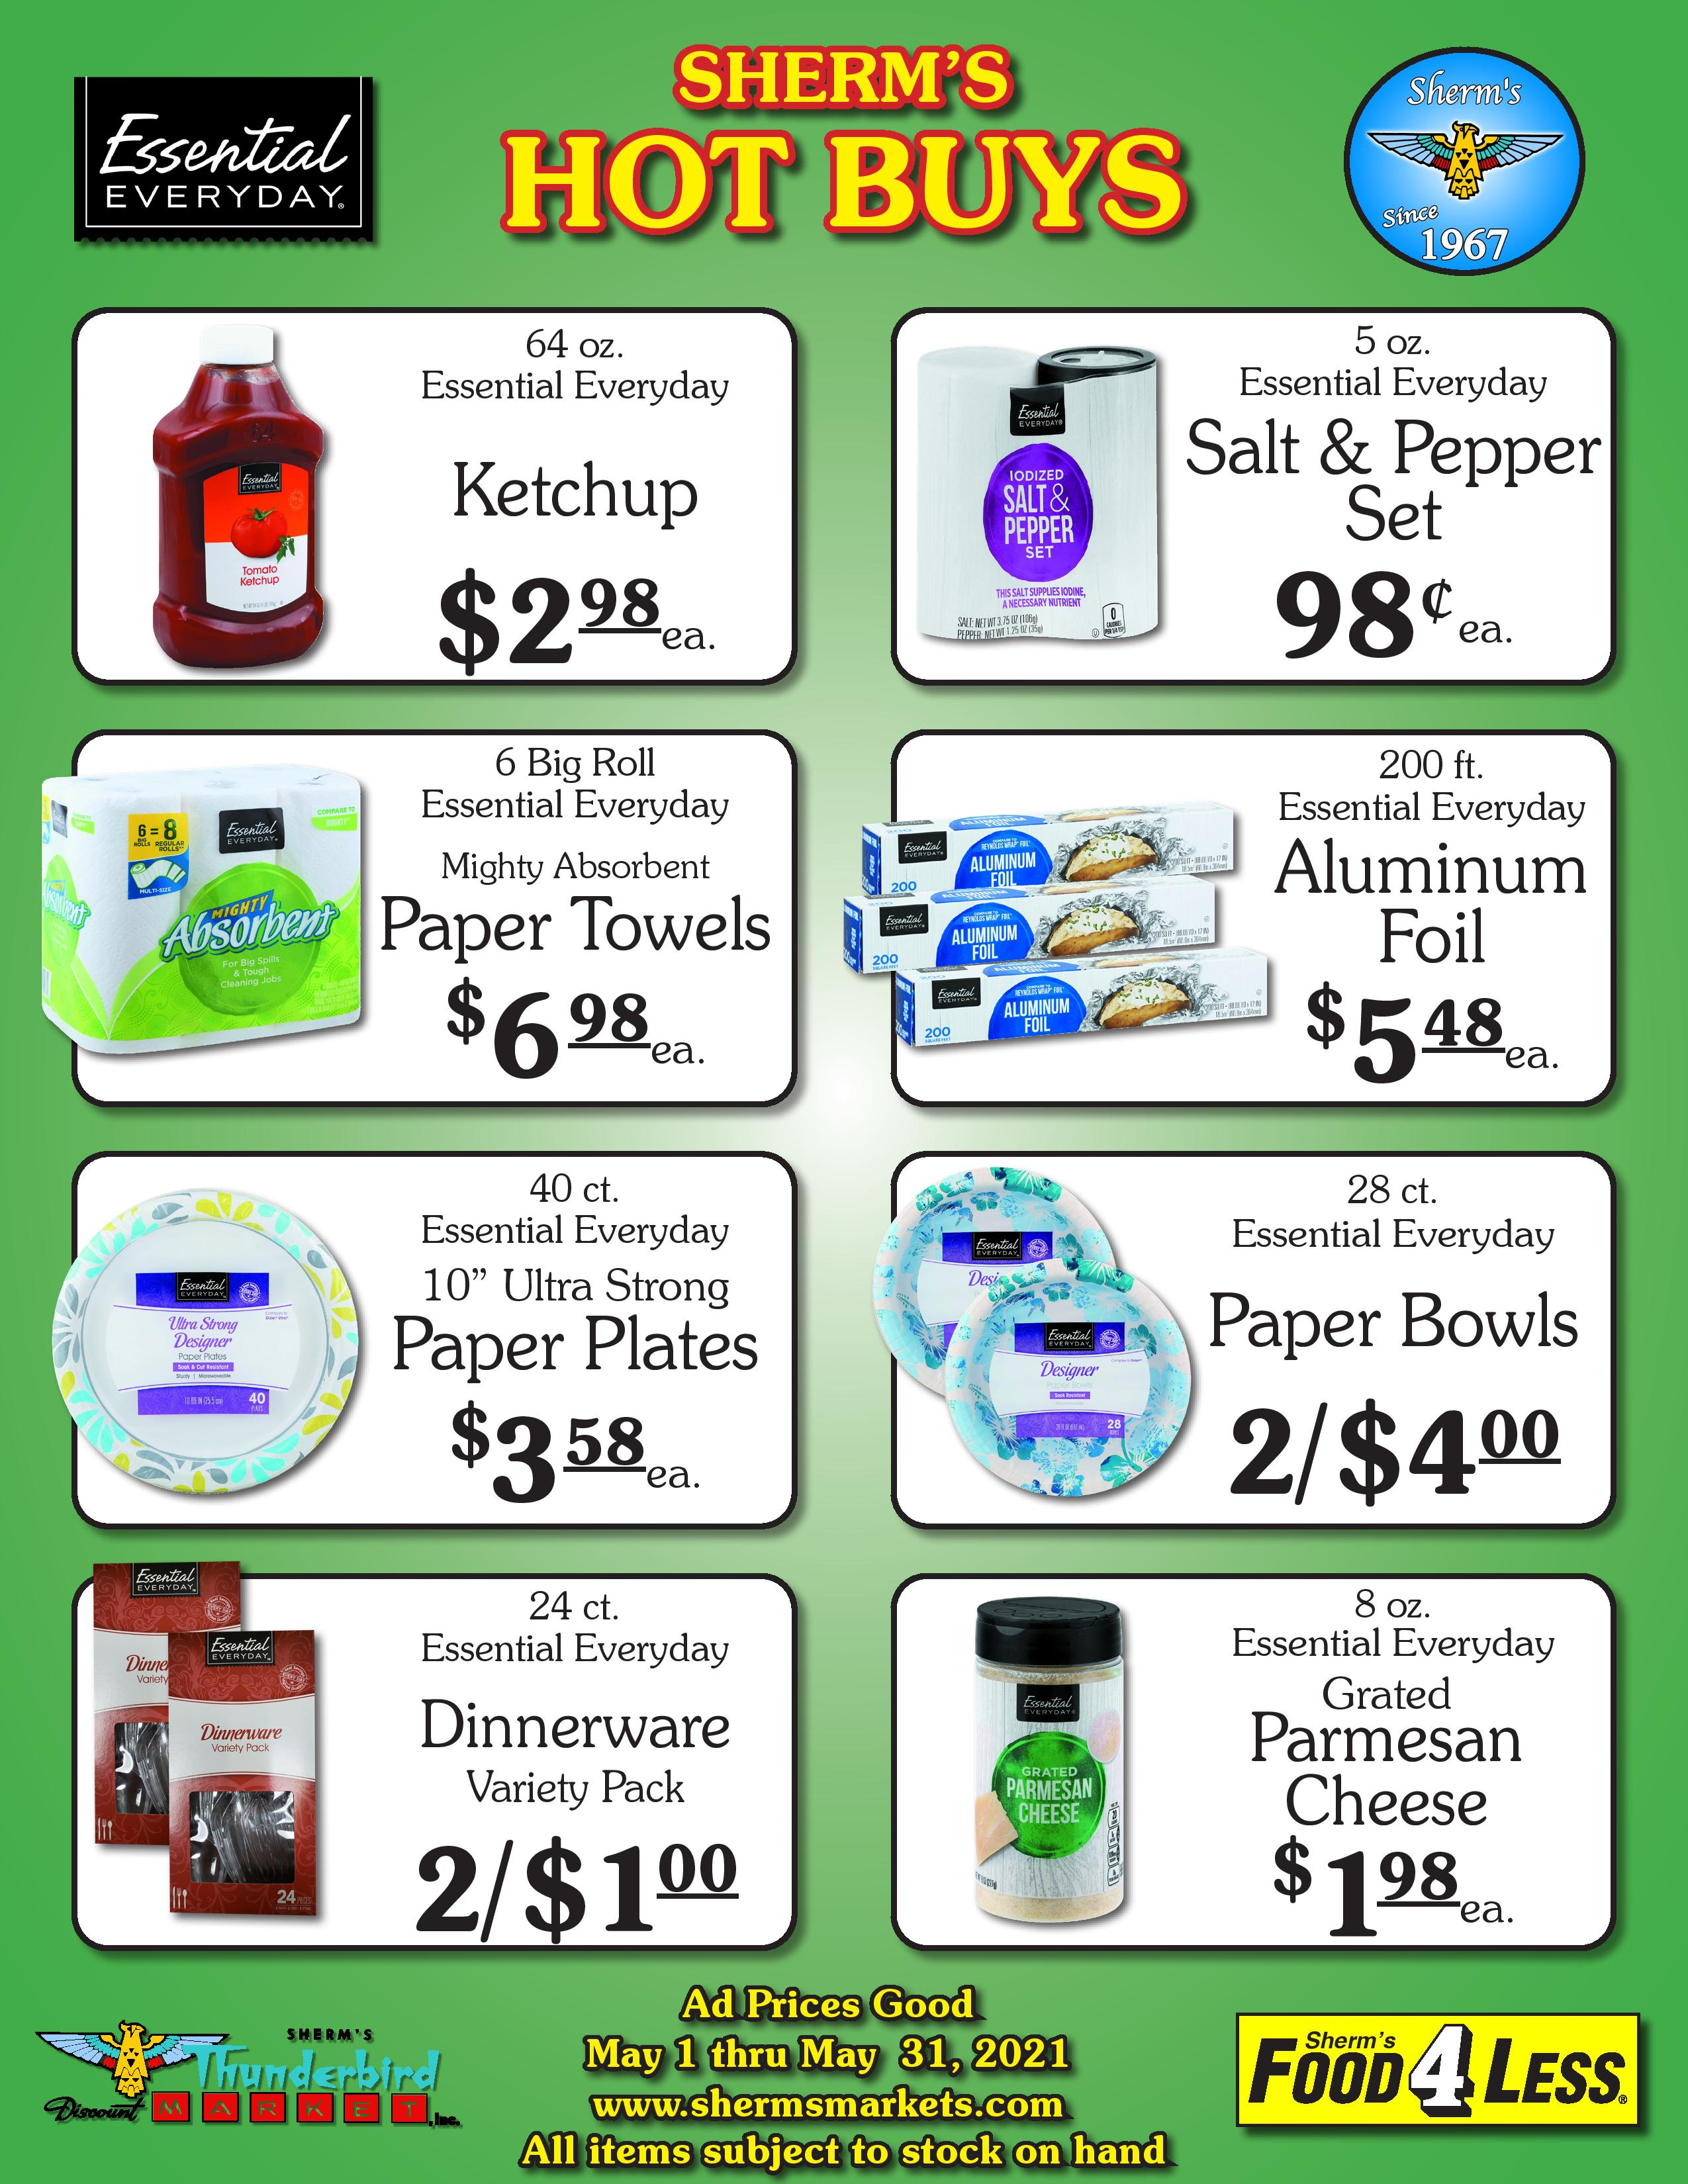 Sherm's May Hot Buys Printable PDF